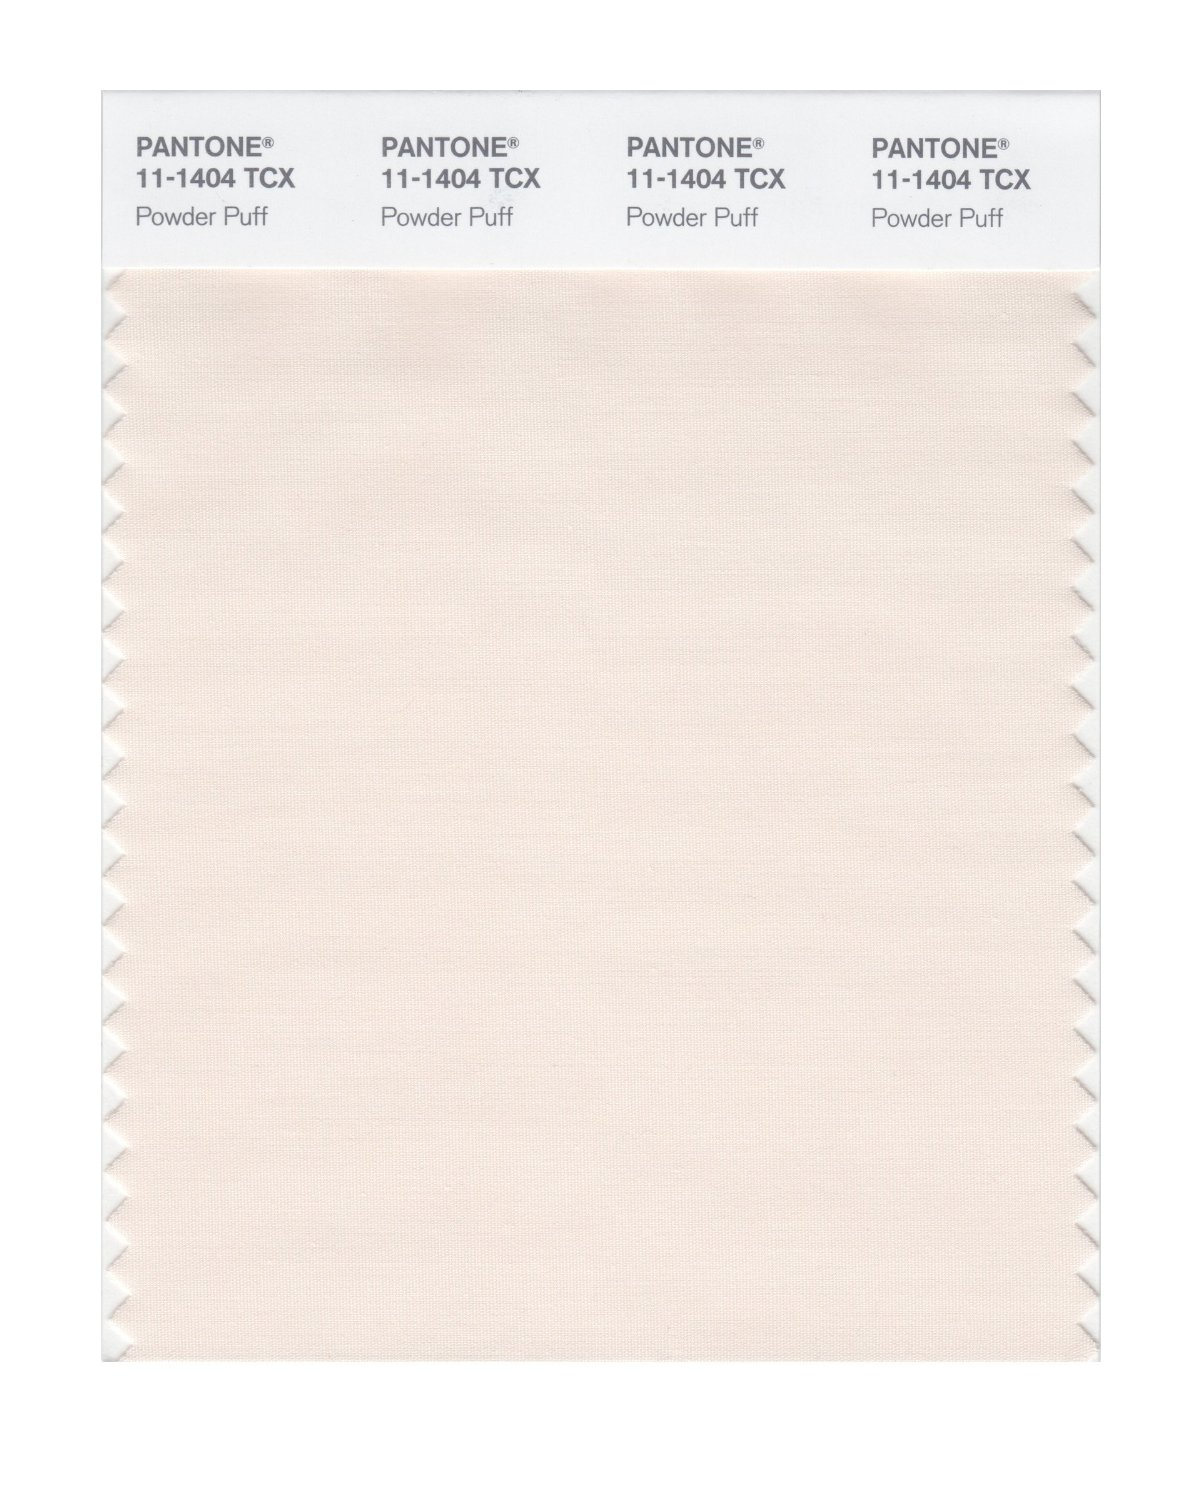 Pantone Smart Swatch 11-1404 Powder Puff